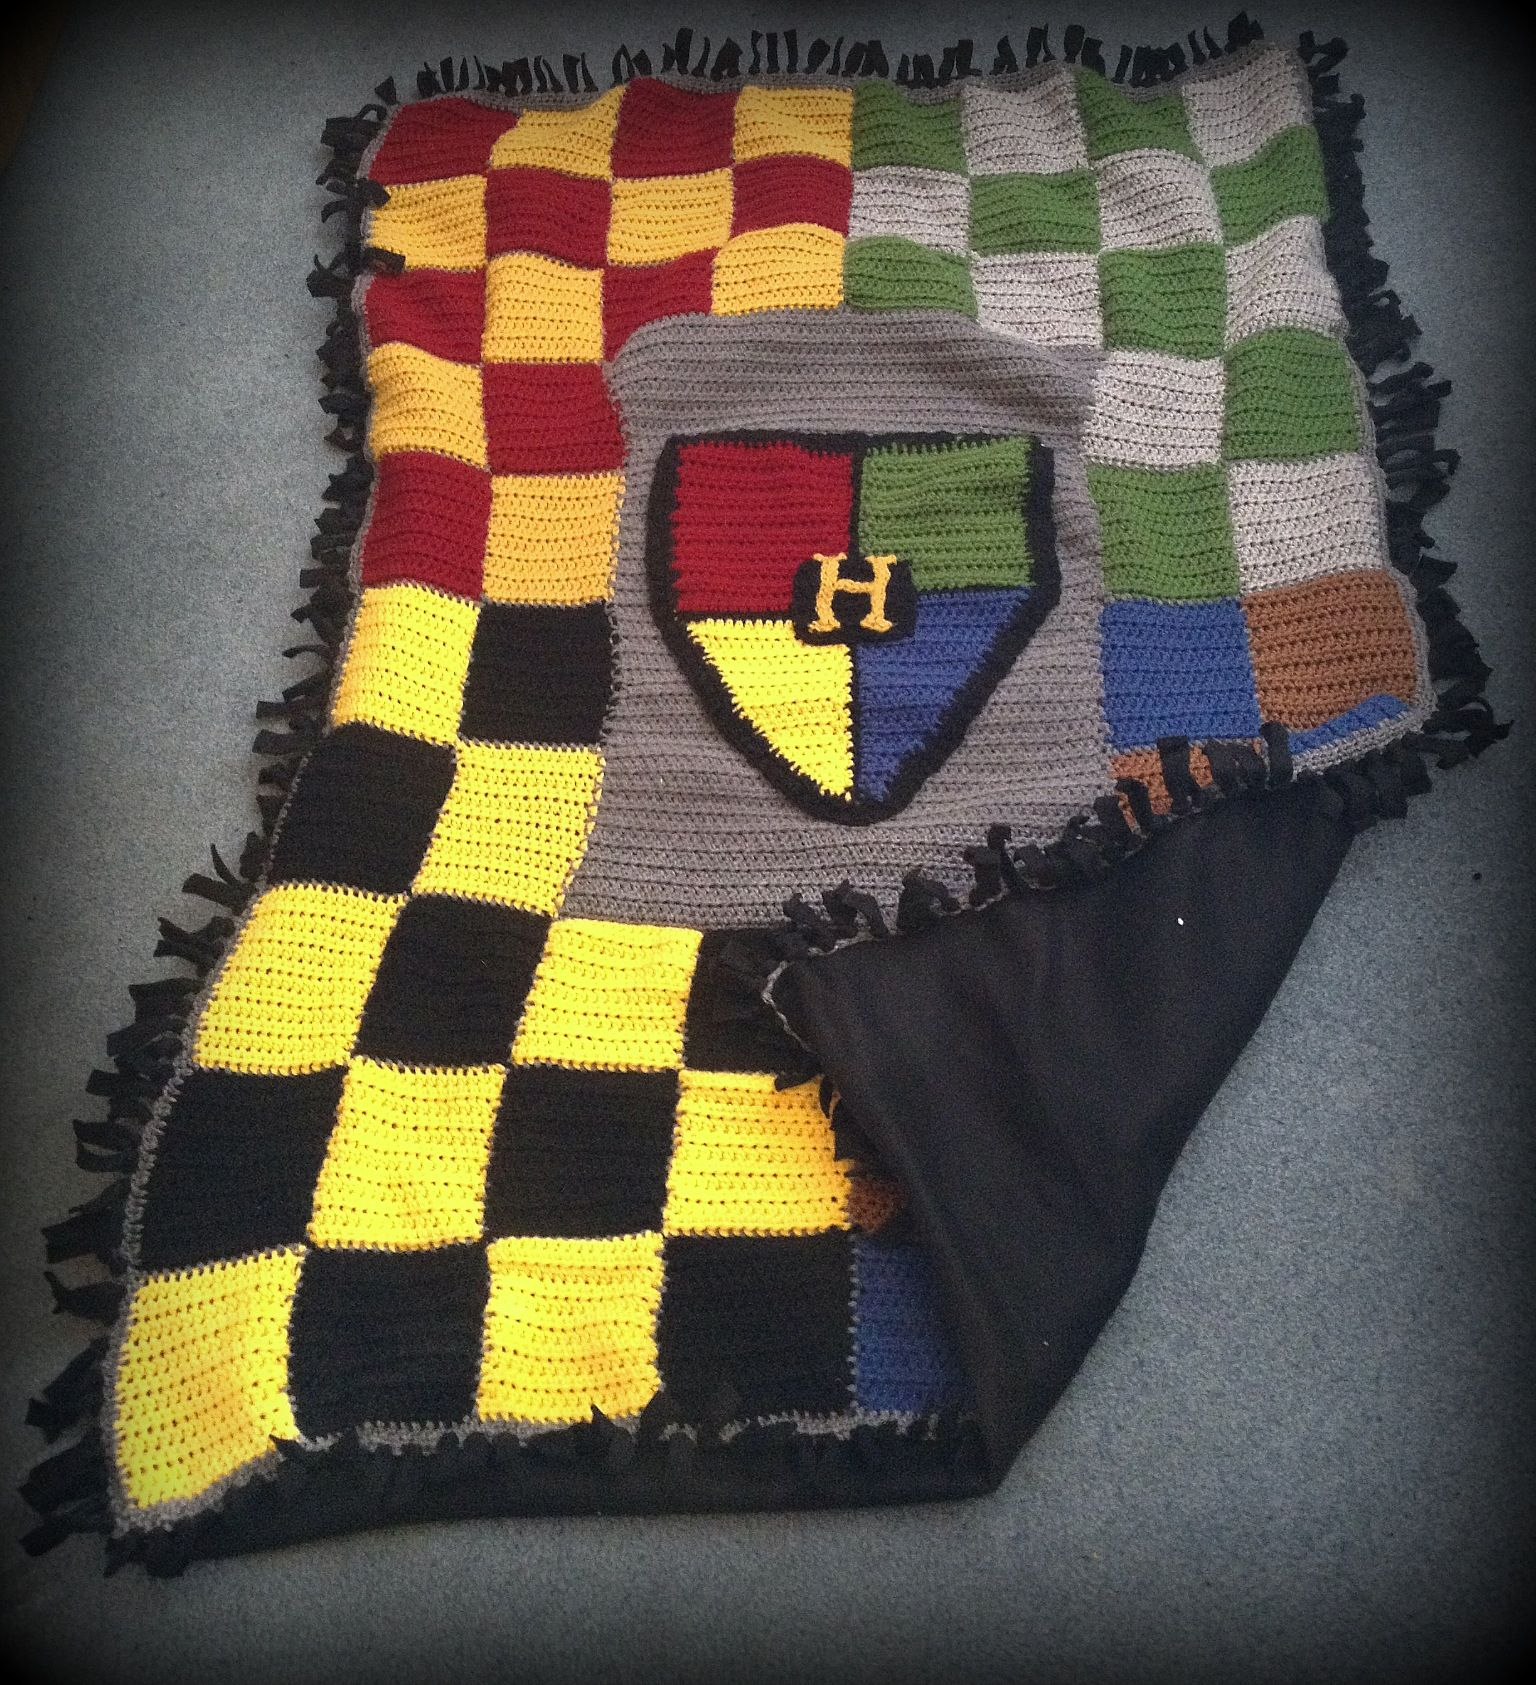 harry potter hogwarts houses crocheted afghan backed with. Black Bedroom Furniture Sets. Home Design Ideas